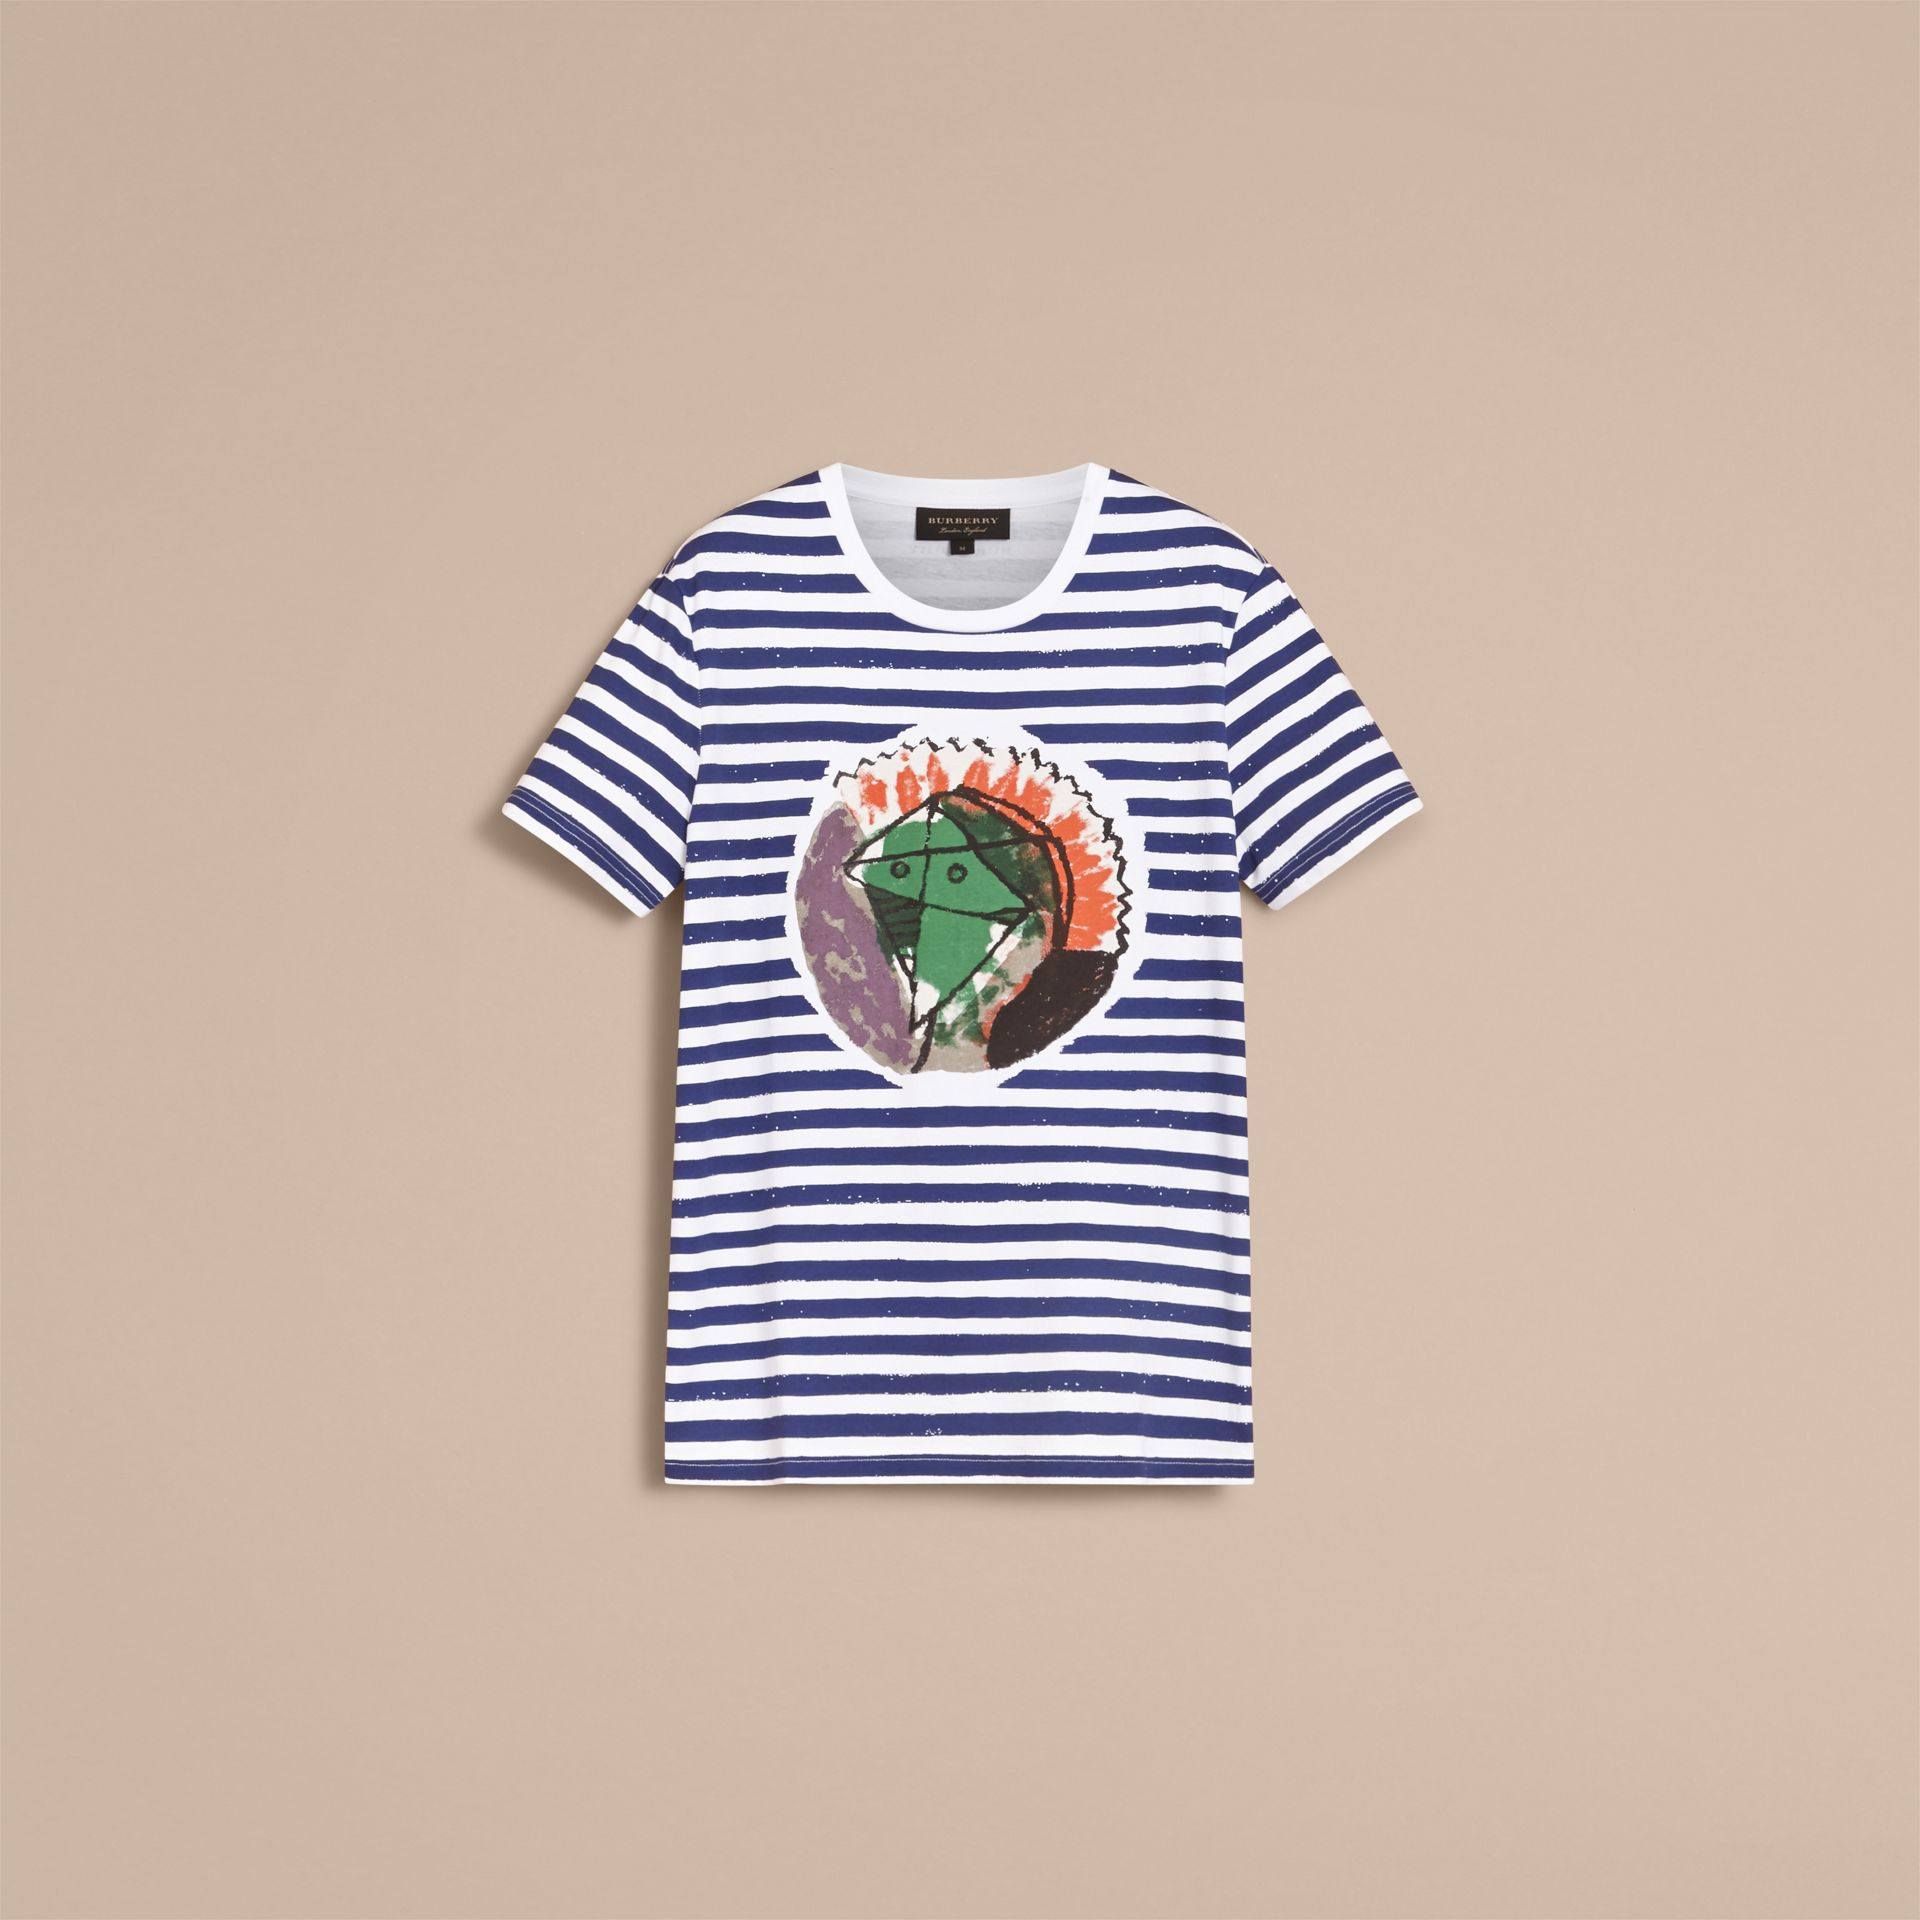 Pallas Heads Print Striped Cotton T-shirt in White - Men | Burberry - gallery image 4